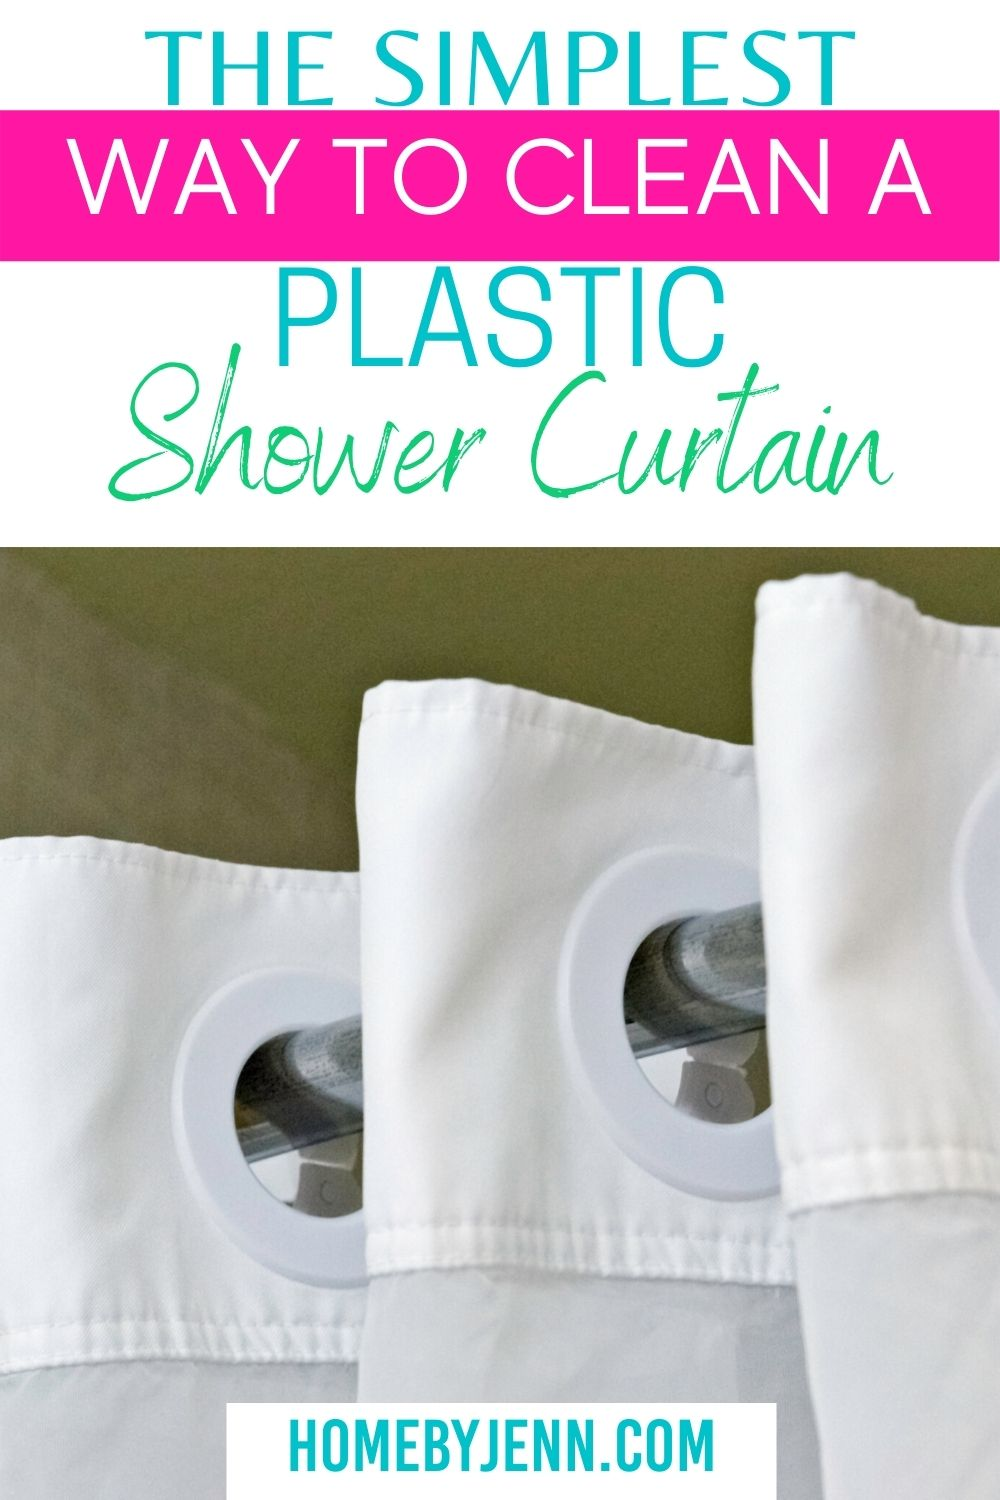 Learn How to clean plastic shower curtain the right way so you can re-use it over and over again. A simple method will give you a clean plastic shower curtain free of mildew #cleaning #bathroom #showercurtain #plasticshowercurtain #howtocleanshowercurtain #howto #easy #clean via @homebyjenn